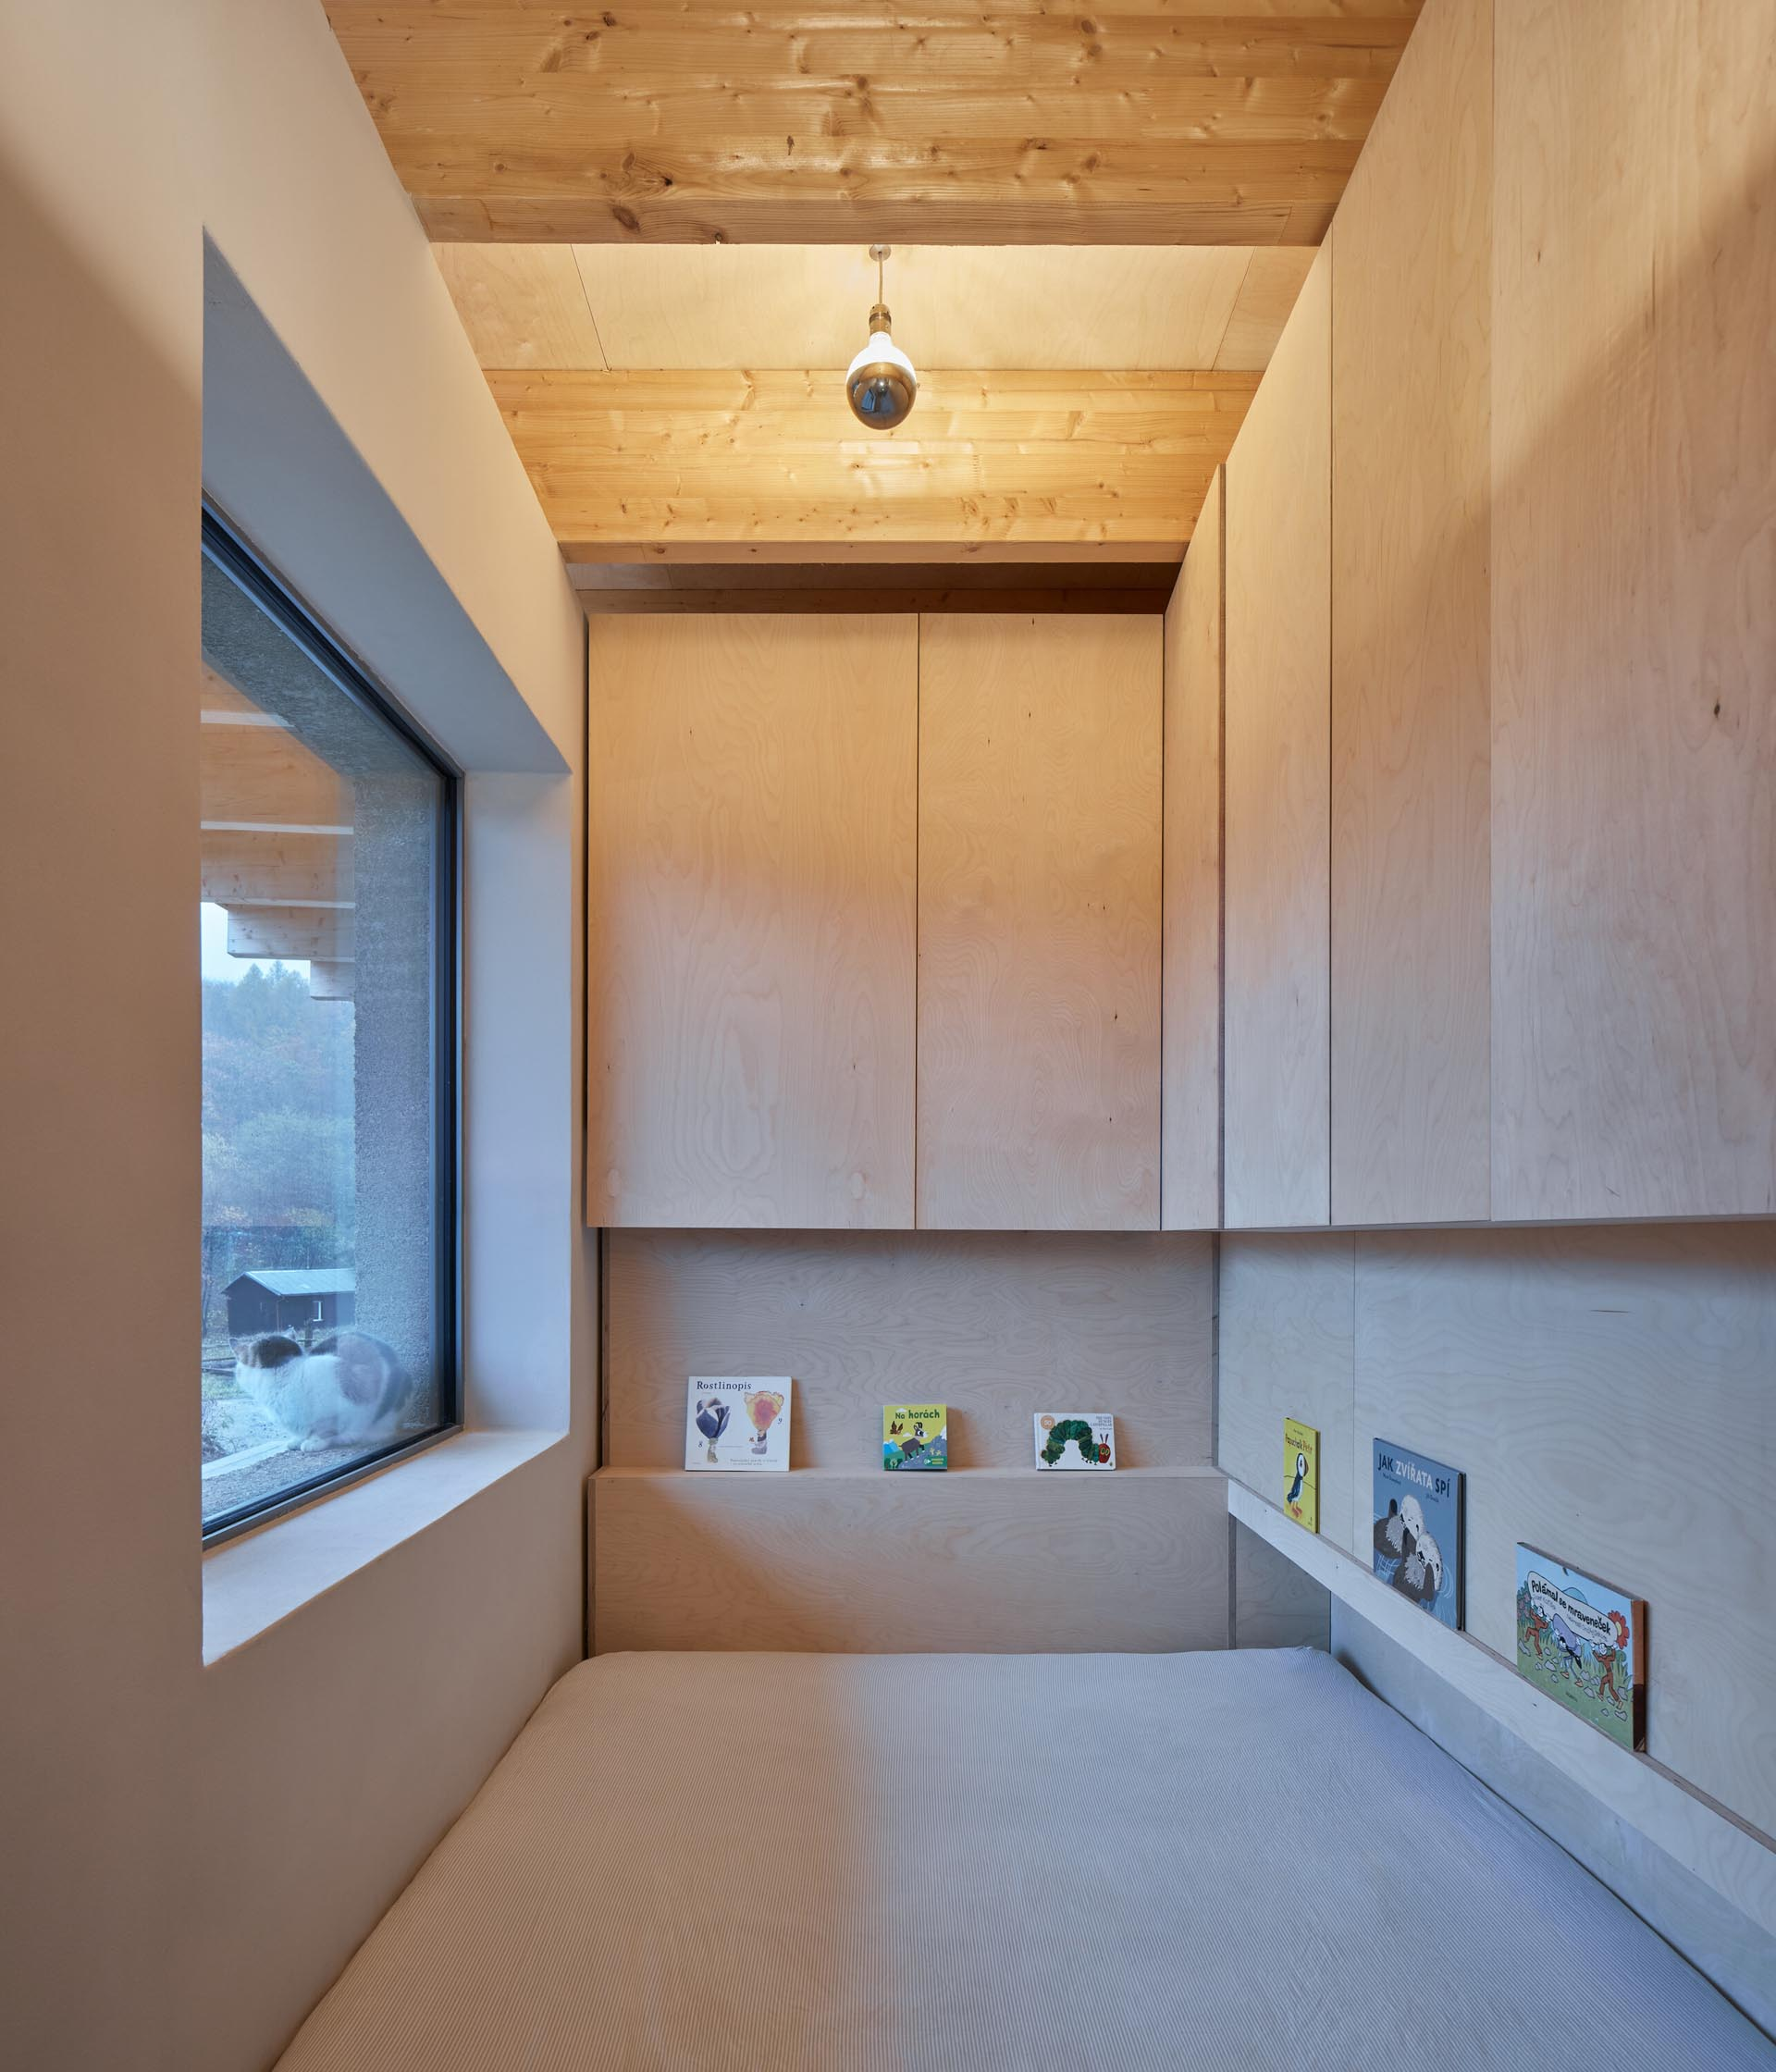 In this child's bedroom, there's a small wood ledge for holding books.